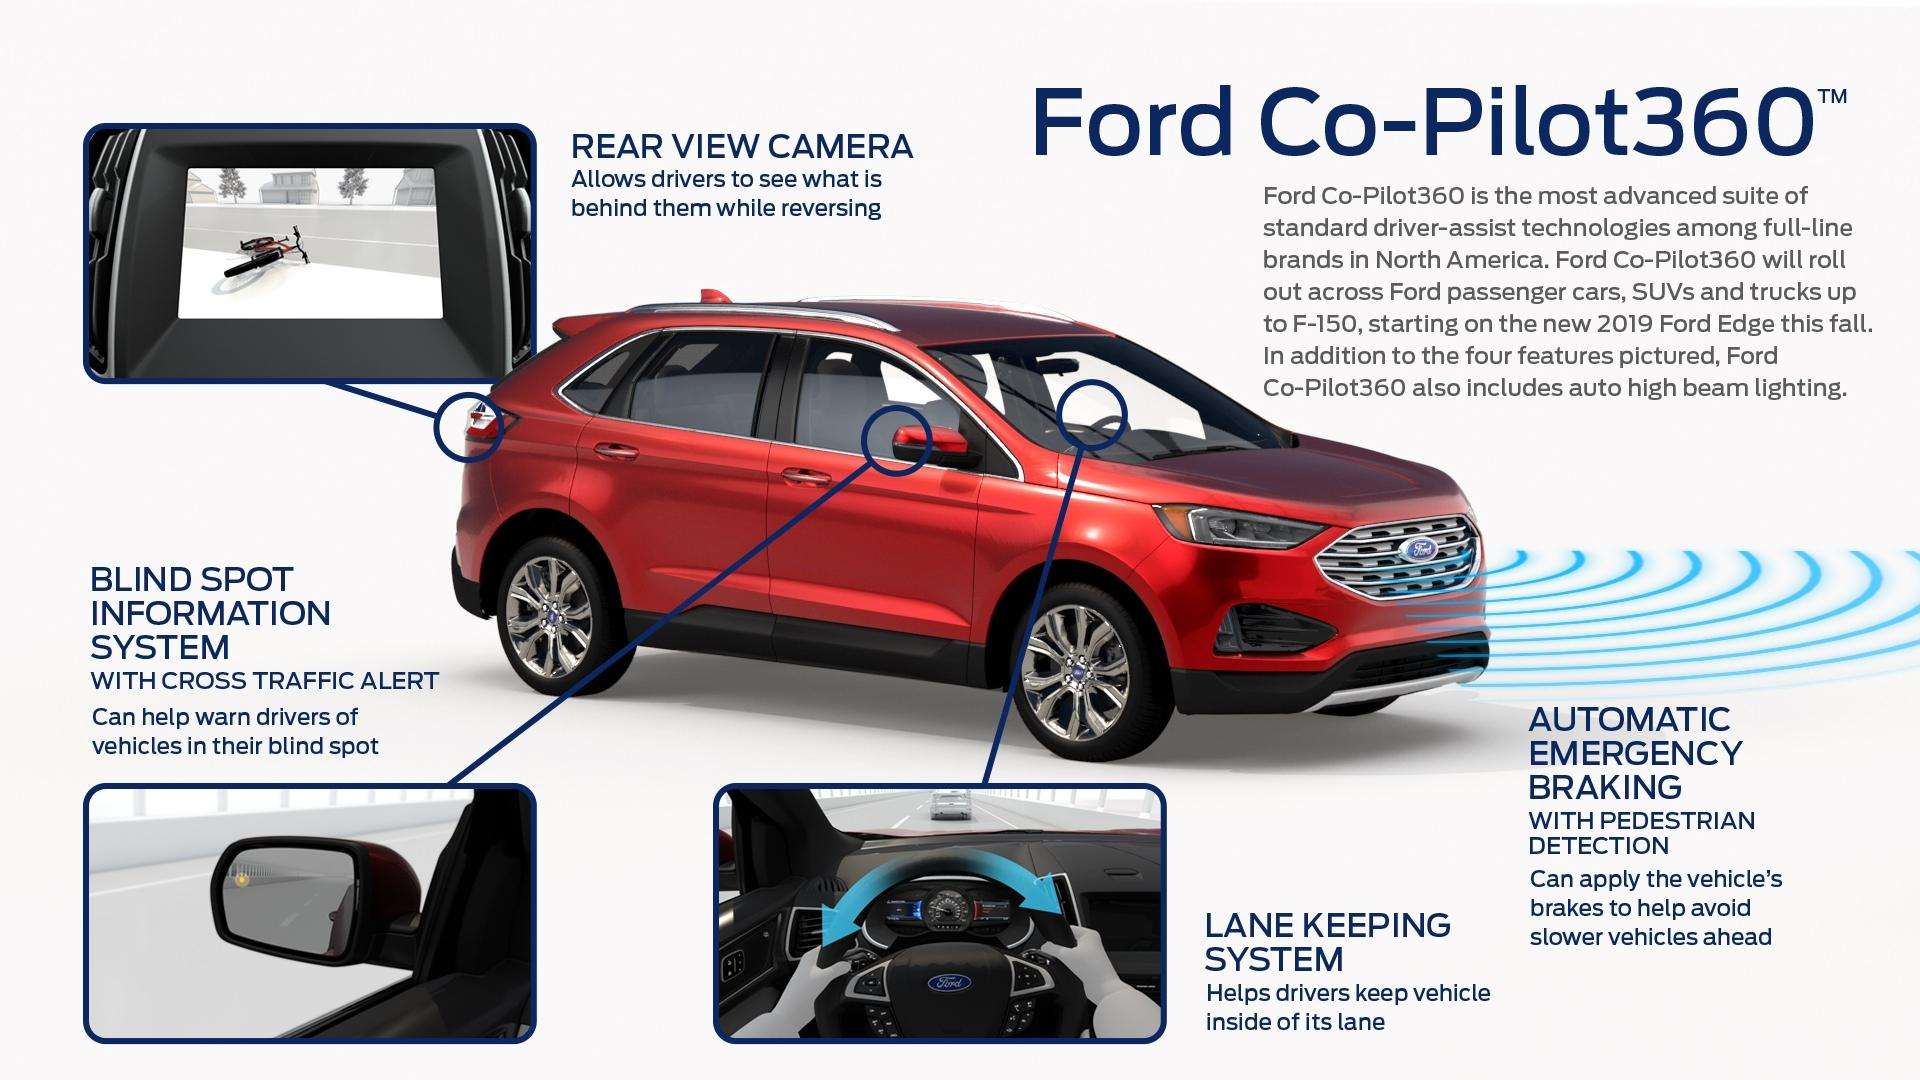 2019 Ford Edge is First SUV to Feature Ford Co-Pilot 360